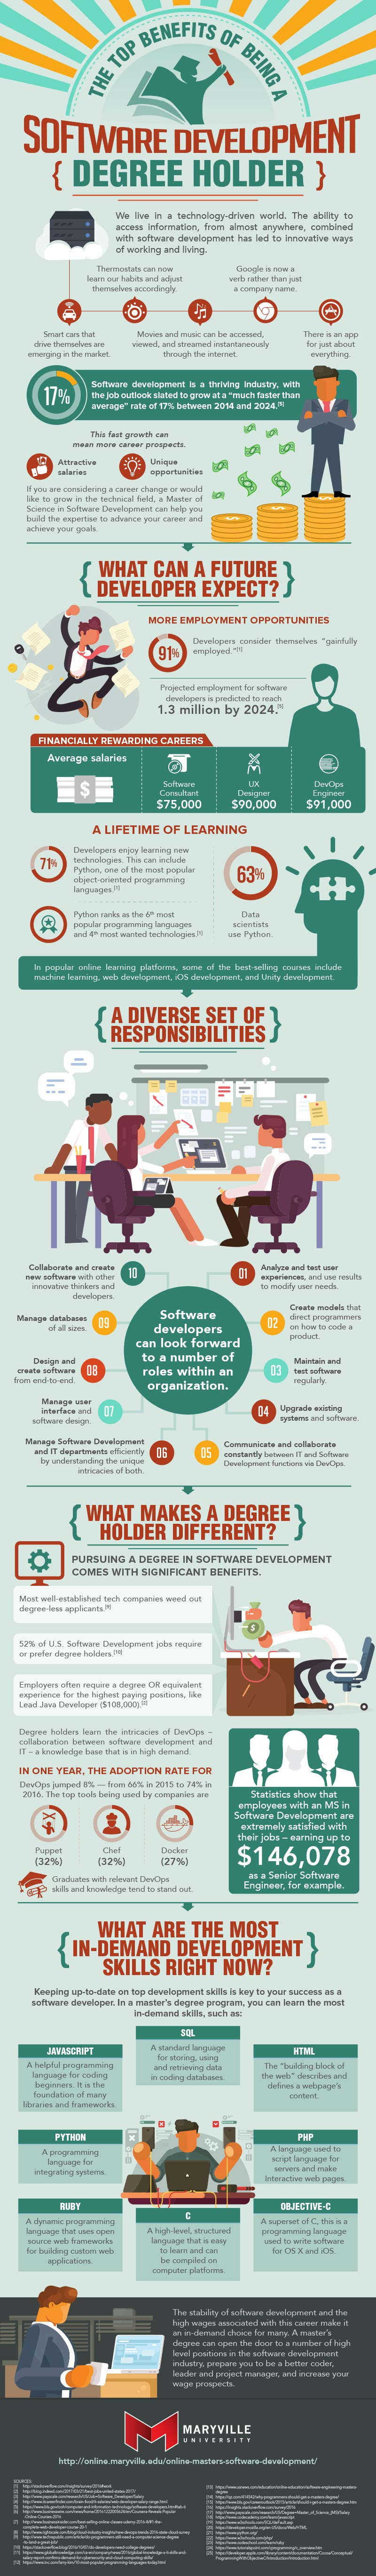 Top 10 Benefits of a Degree Holder in Software Development Infographic